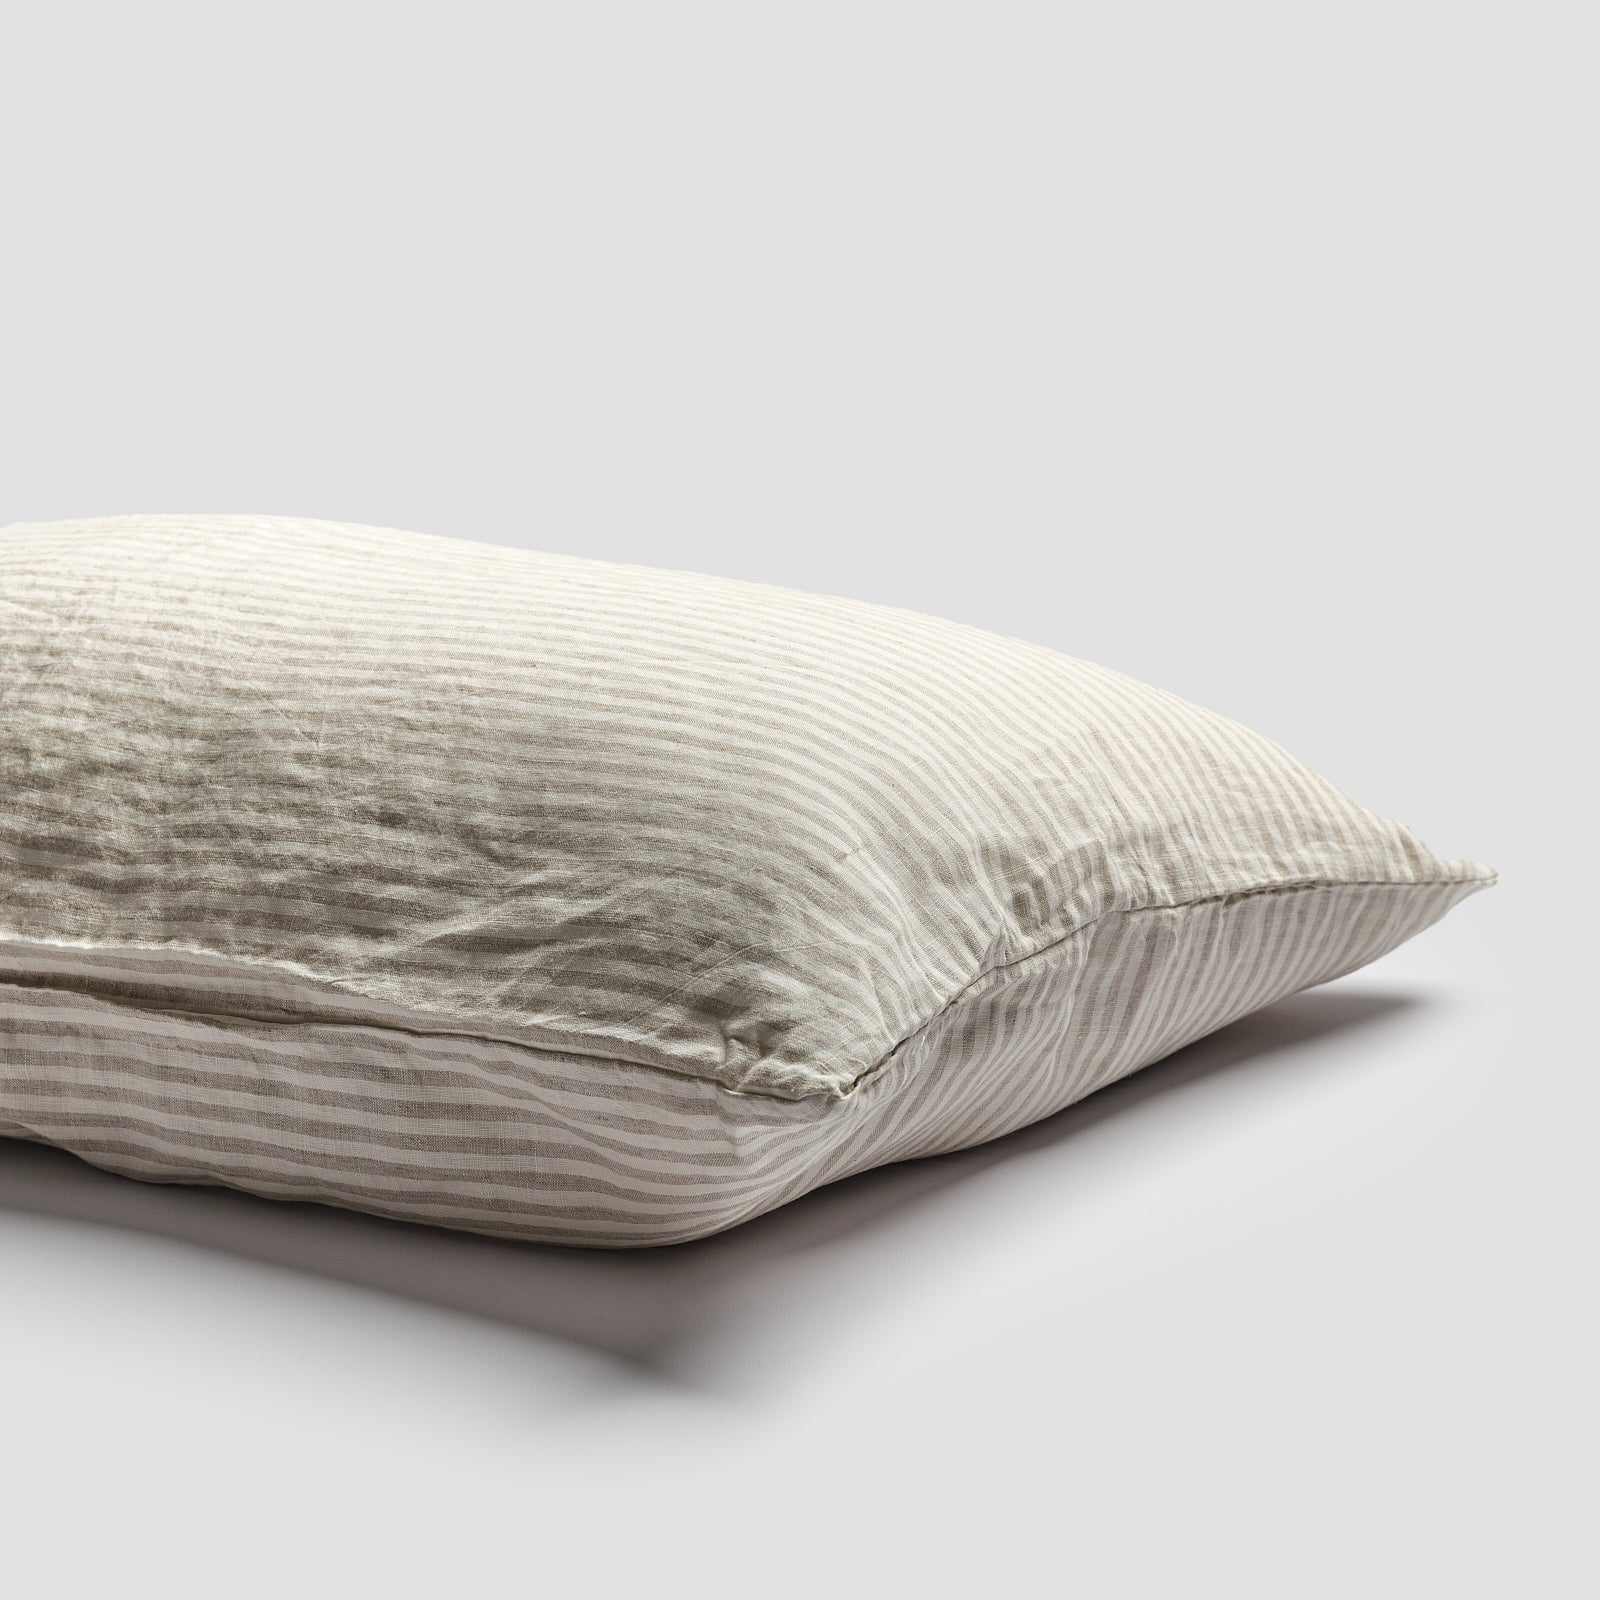 Piglet Oatmeal Stripe Linen Pillowcases (Pair) Size Standard | 100% Natural Stonewashed French flax